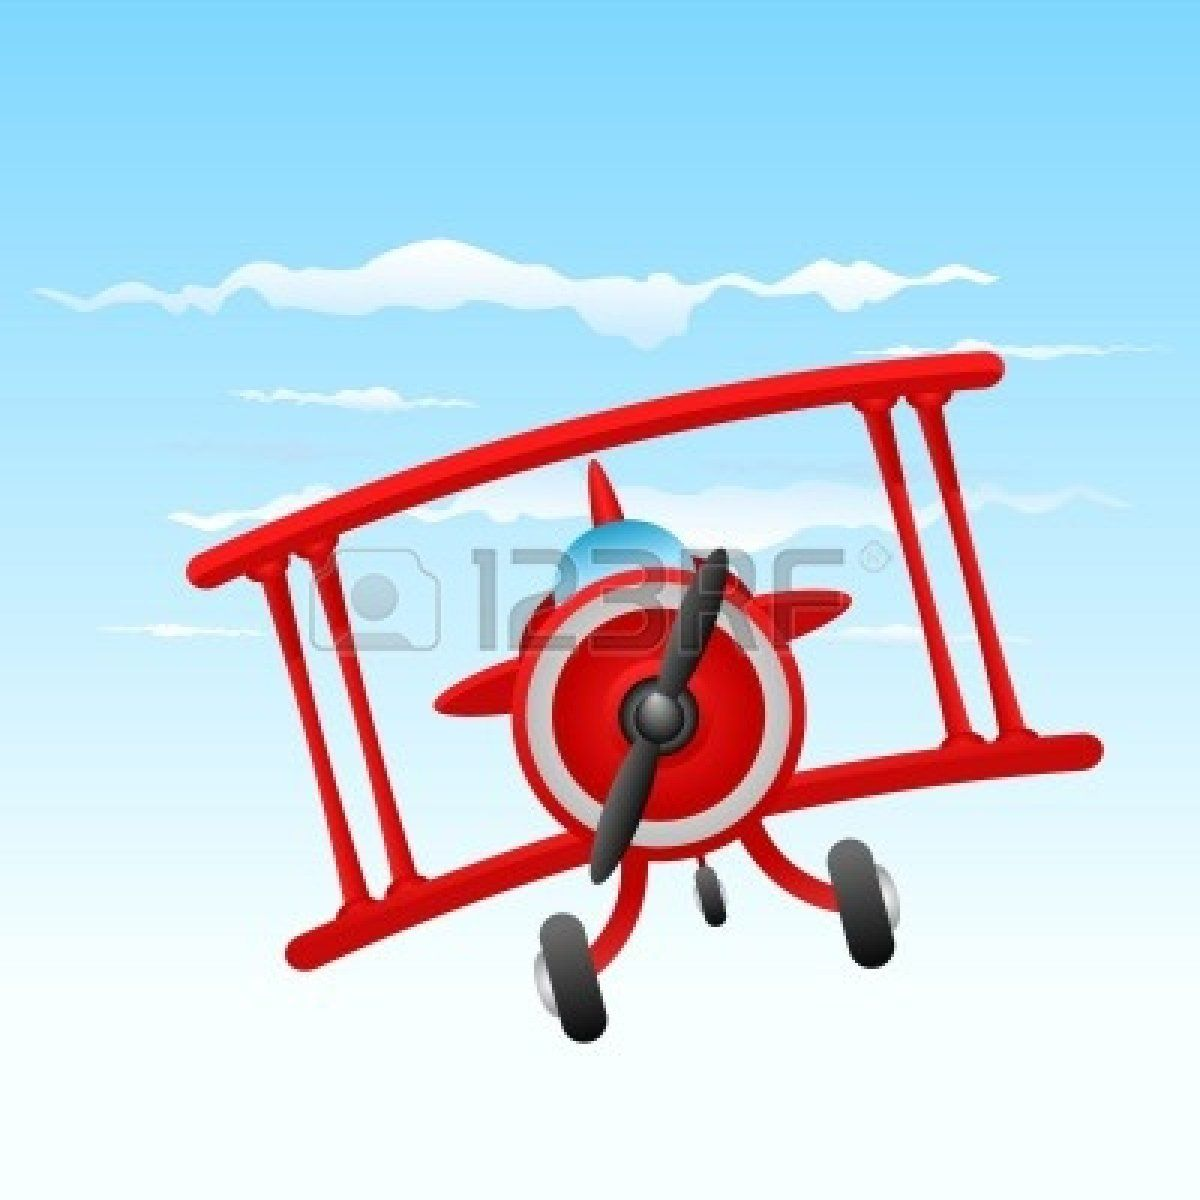 Biplane clipart vintage. Red blue ck theme